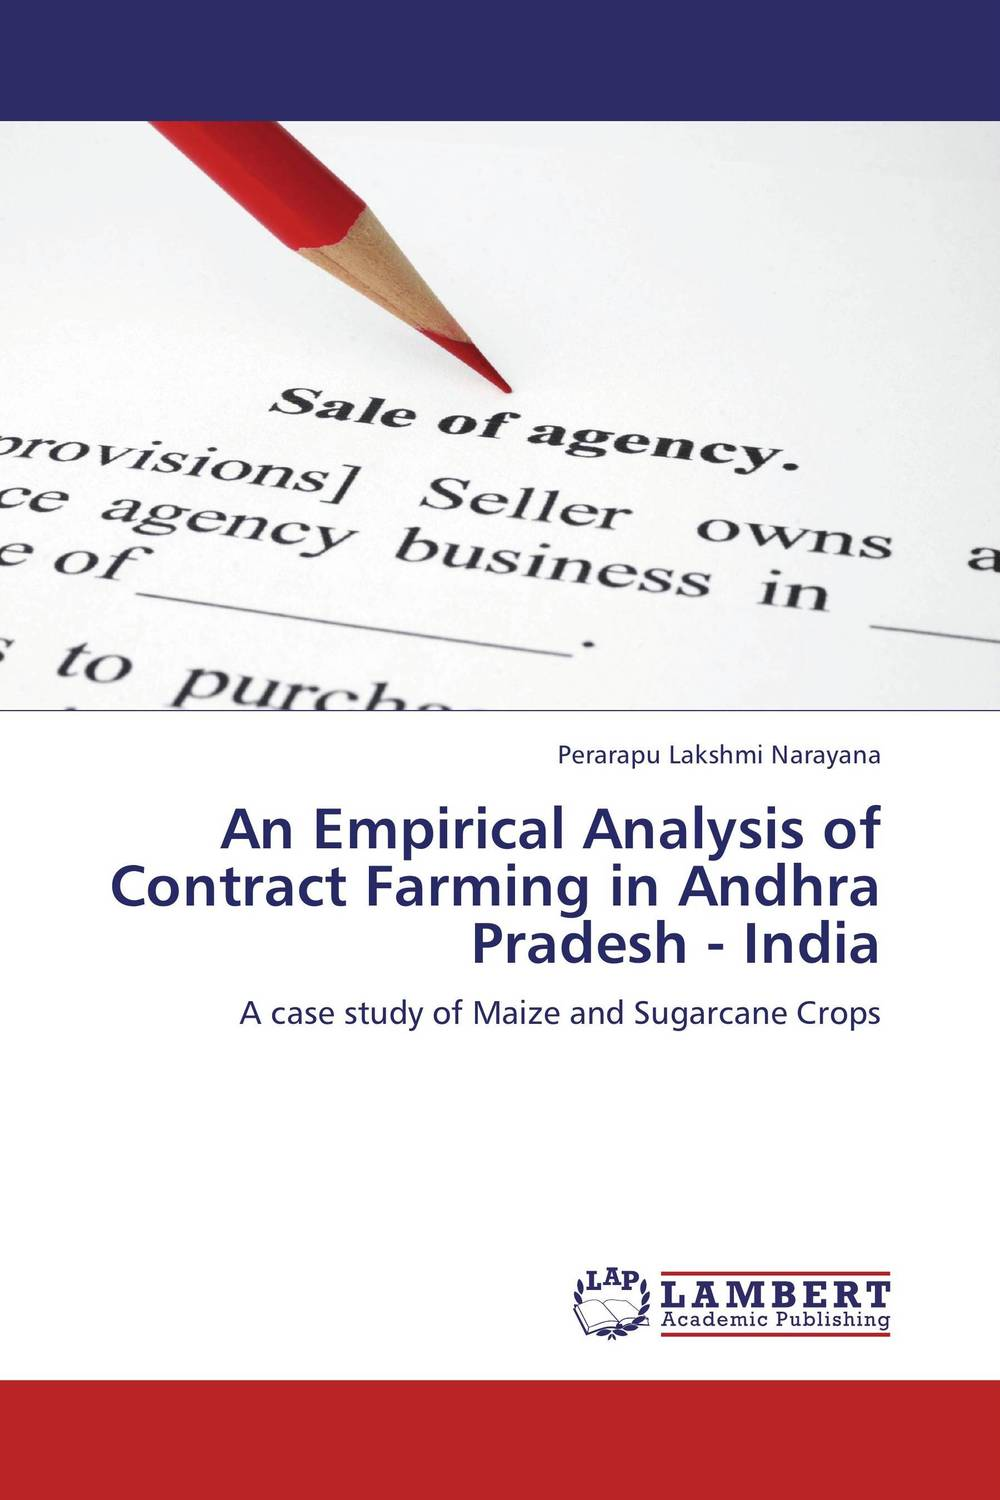 An Empirical Analysis of Contract Farming in Andhra Pradesh - India